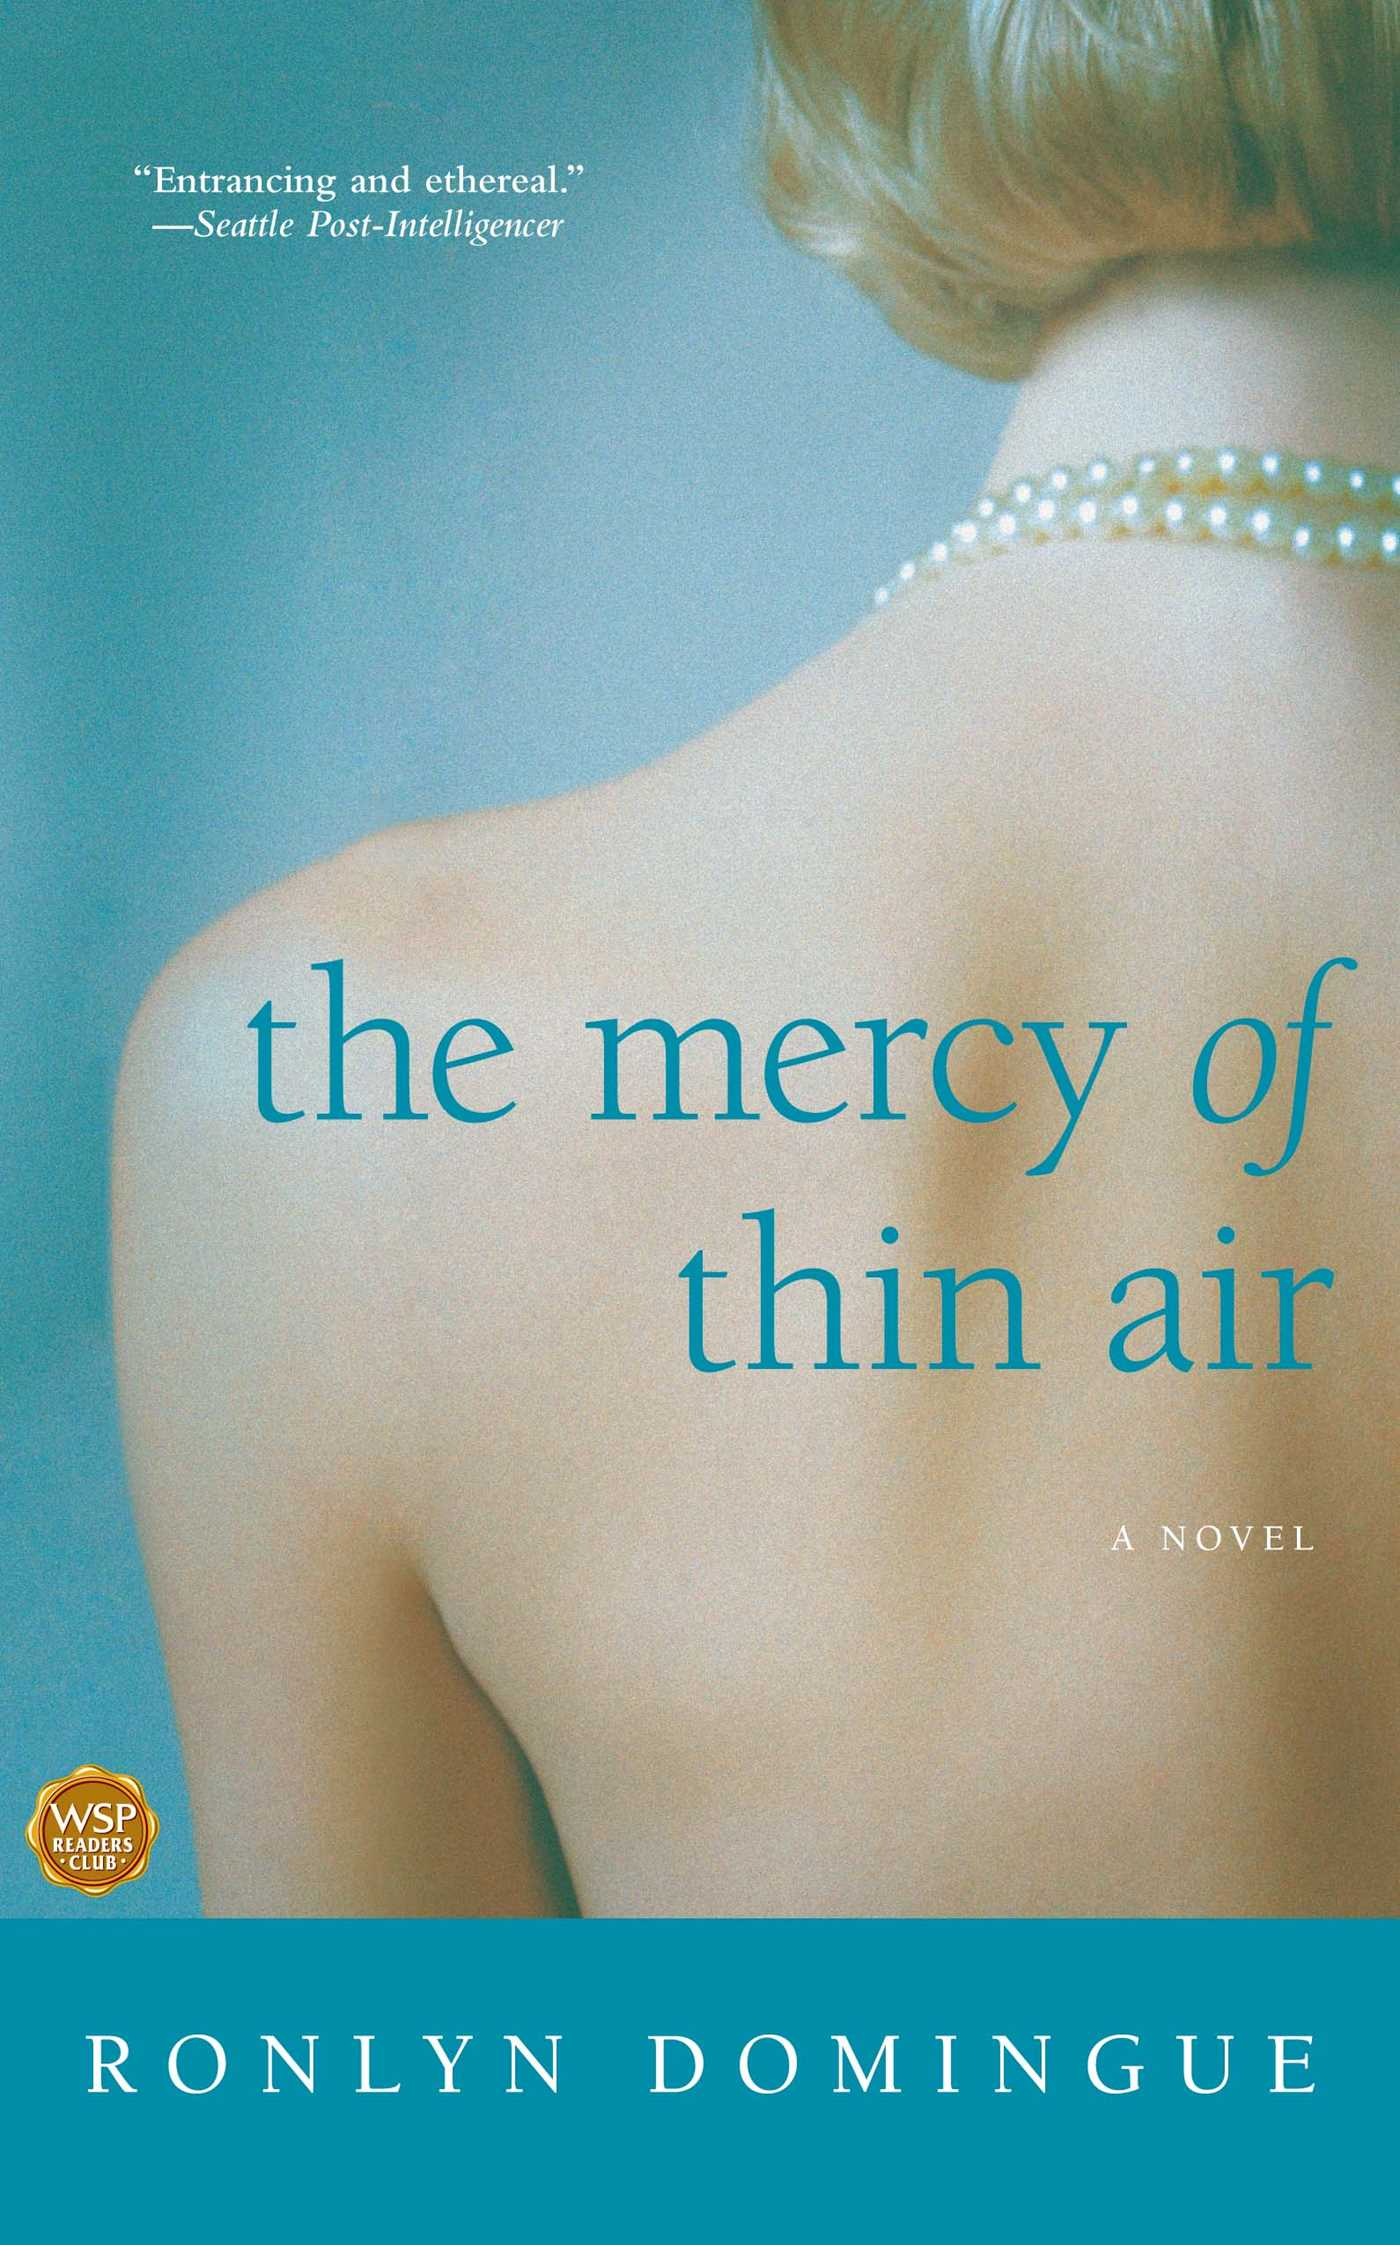 The-mercy-of-thin-air-9781416524656_hr